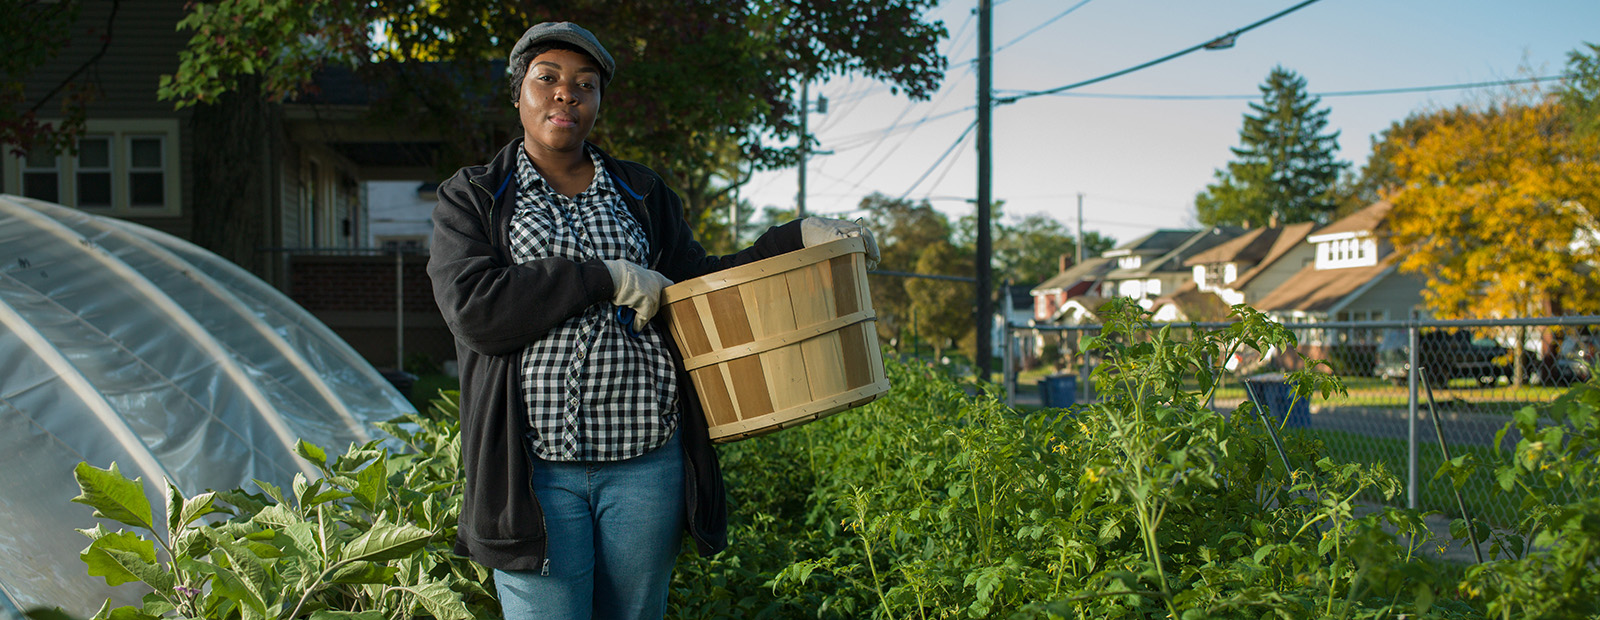 Takidia Smith with Fresh Beets harvests from her urban acreage. <span class='image-credits'>Adam Bird</span>